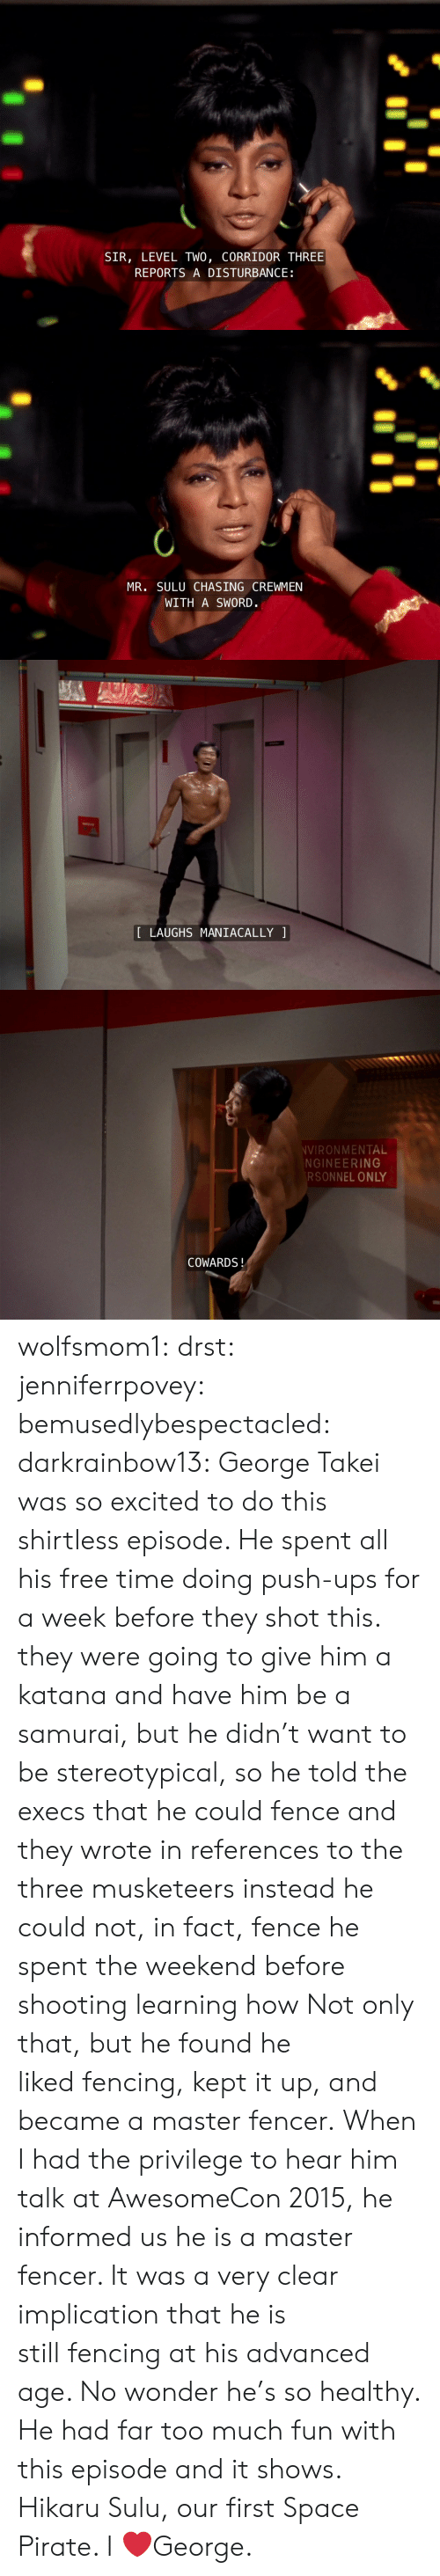 fencing: SIR, LEVEL TWO, CORRIDOR THREE  REPORTS A DISTURBANCE   MR. SULU CHASING CREWMEN  WITH A SWORD.   LAUGHS MANIACALLY   VIRONMENTAL  NGINEERING  RSONNEL ONLY  COWARDS! wolfsmom1:  drst:   jenniferrpovey:  bemusedlybespectacled:  darkrainbow13:  George Takei was so excited to do this shirtless episode. He spent all his free time doing push-ups for a week before they shot this.  they were going to give him a katana and have him be a samurai, but he didn't want to be stereotypical, so he told the execs that he could fence and they wrote in references to the three musketeers instead he could not, in fact, fence he spent the weekend before shooting learning how  Not only that, but he found he liked fencing, kept it up, and became a master fencer. When I had the privilege to hear him talk at AwesomeCon 2015, he informed us he is a master fencer. It was a very clear implication that he is still fencing at his advanced age. No wonder he's so healthy. He had far too much fun with this episode and it shows.   Hikaru Sulu, our first Space Pirate.    I ❤️George.